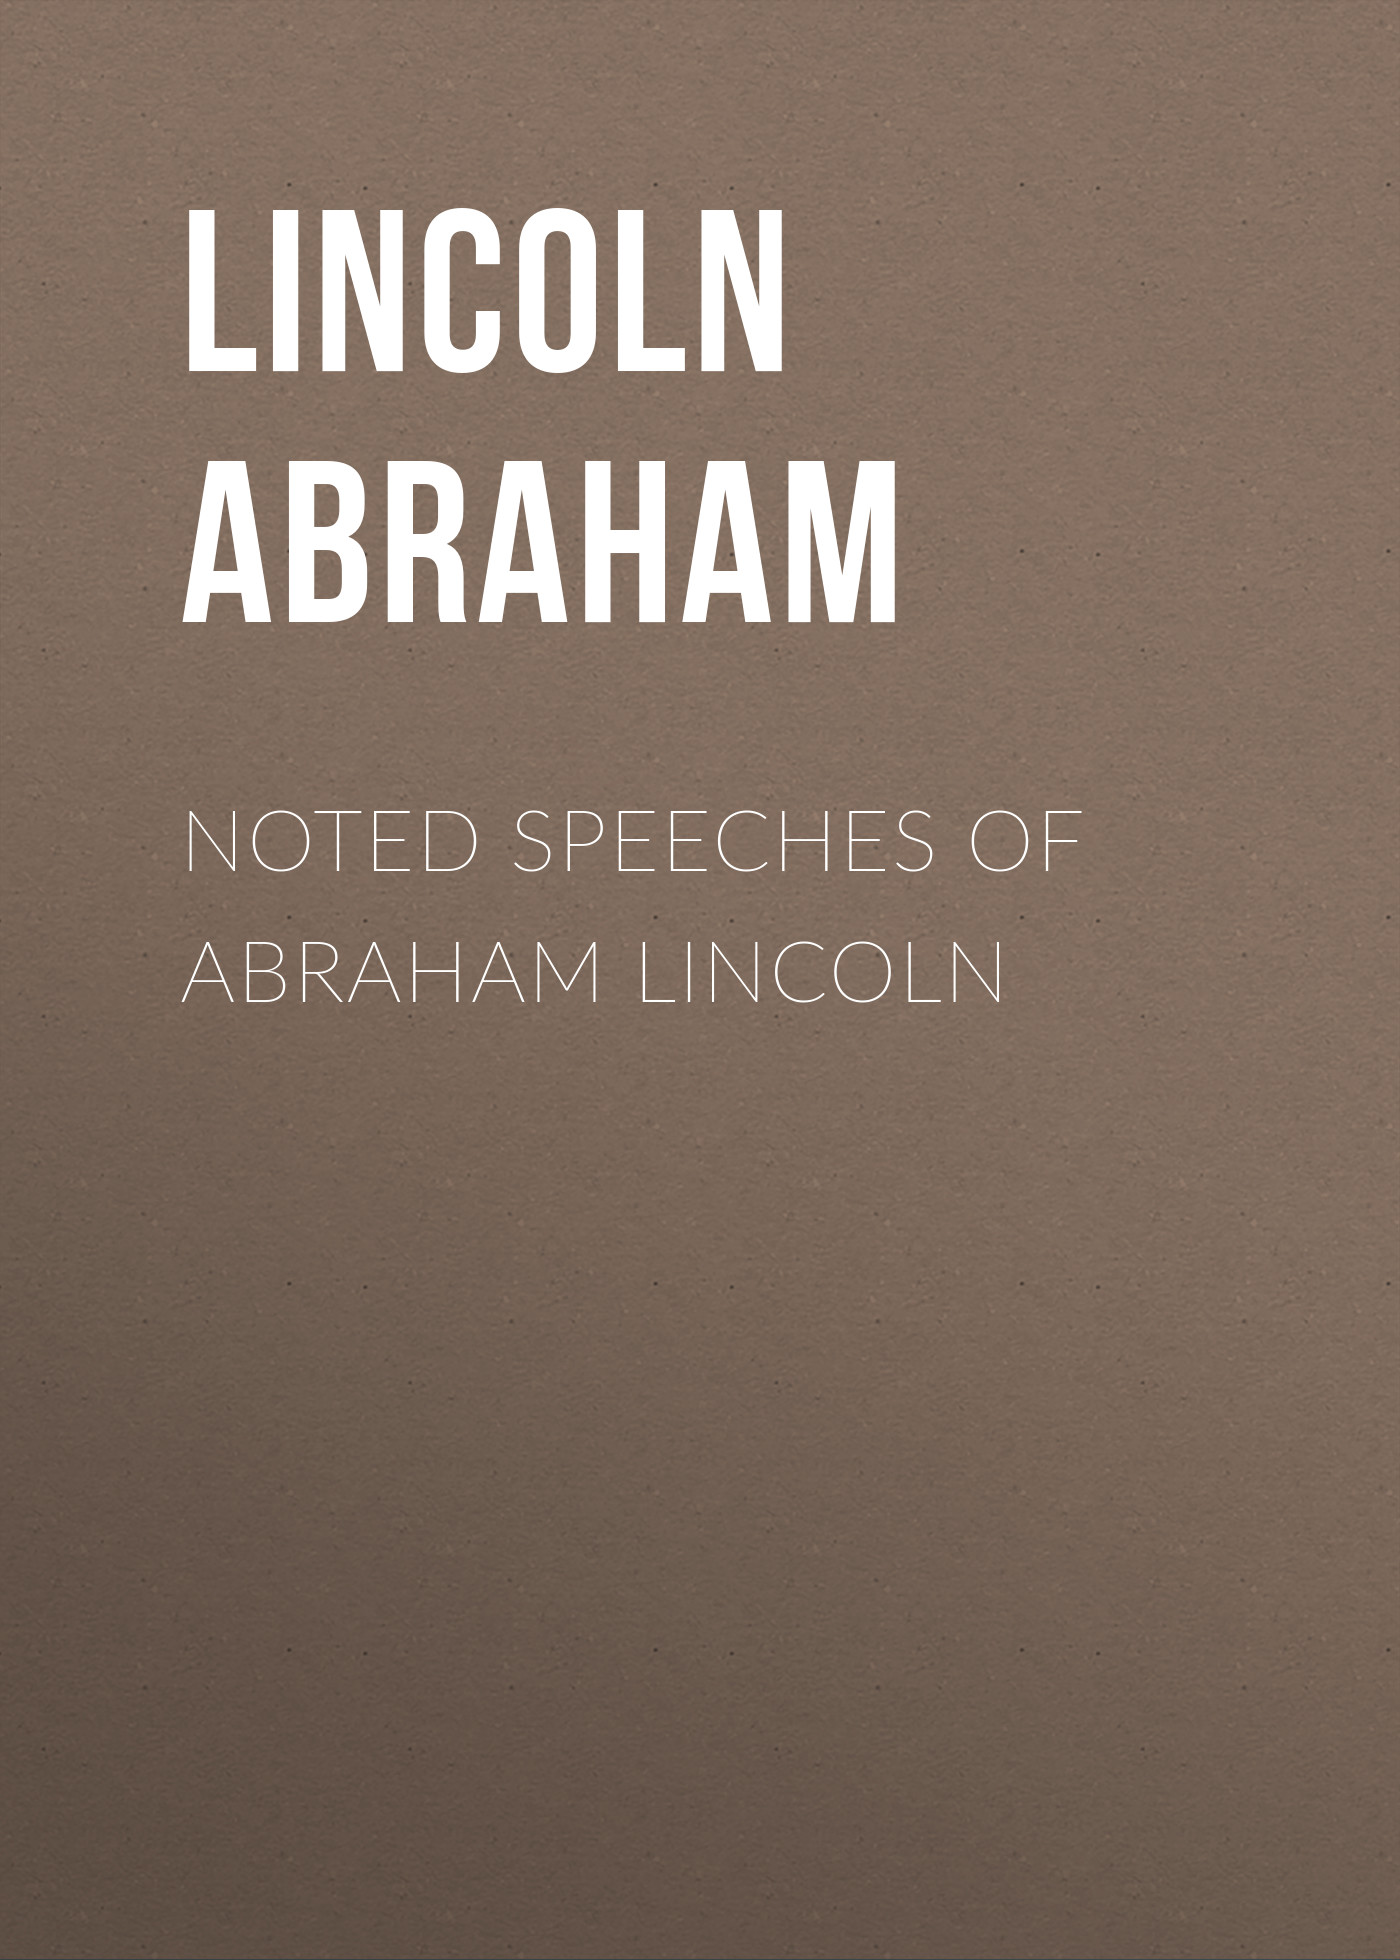 Lincoln Abraham Noted Speeches of Abraham Lincoln недорго, оригинальная цена